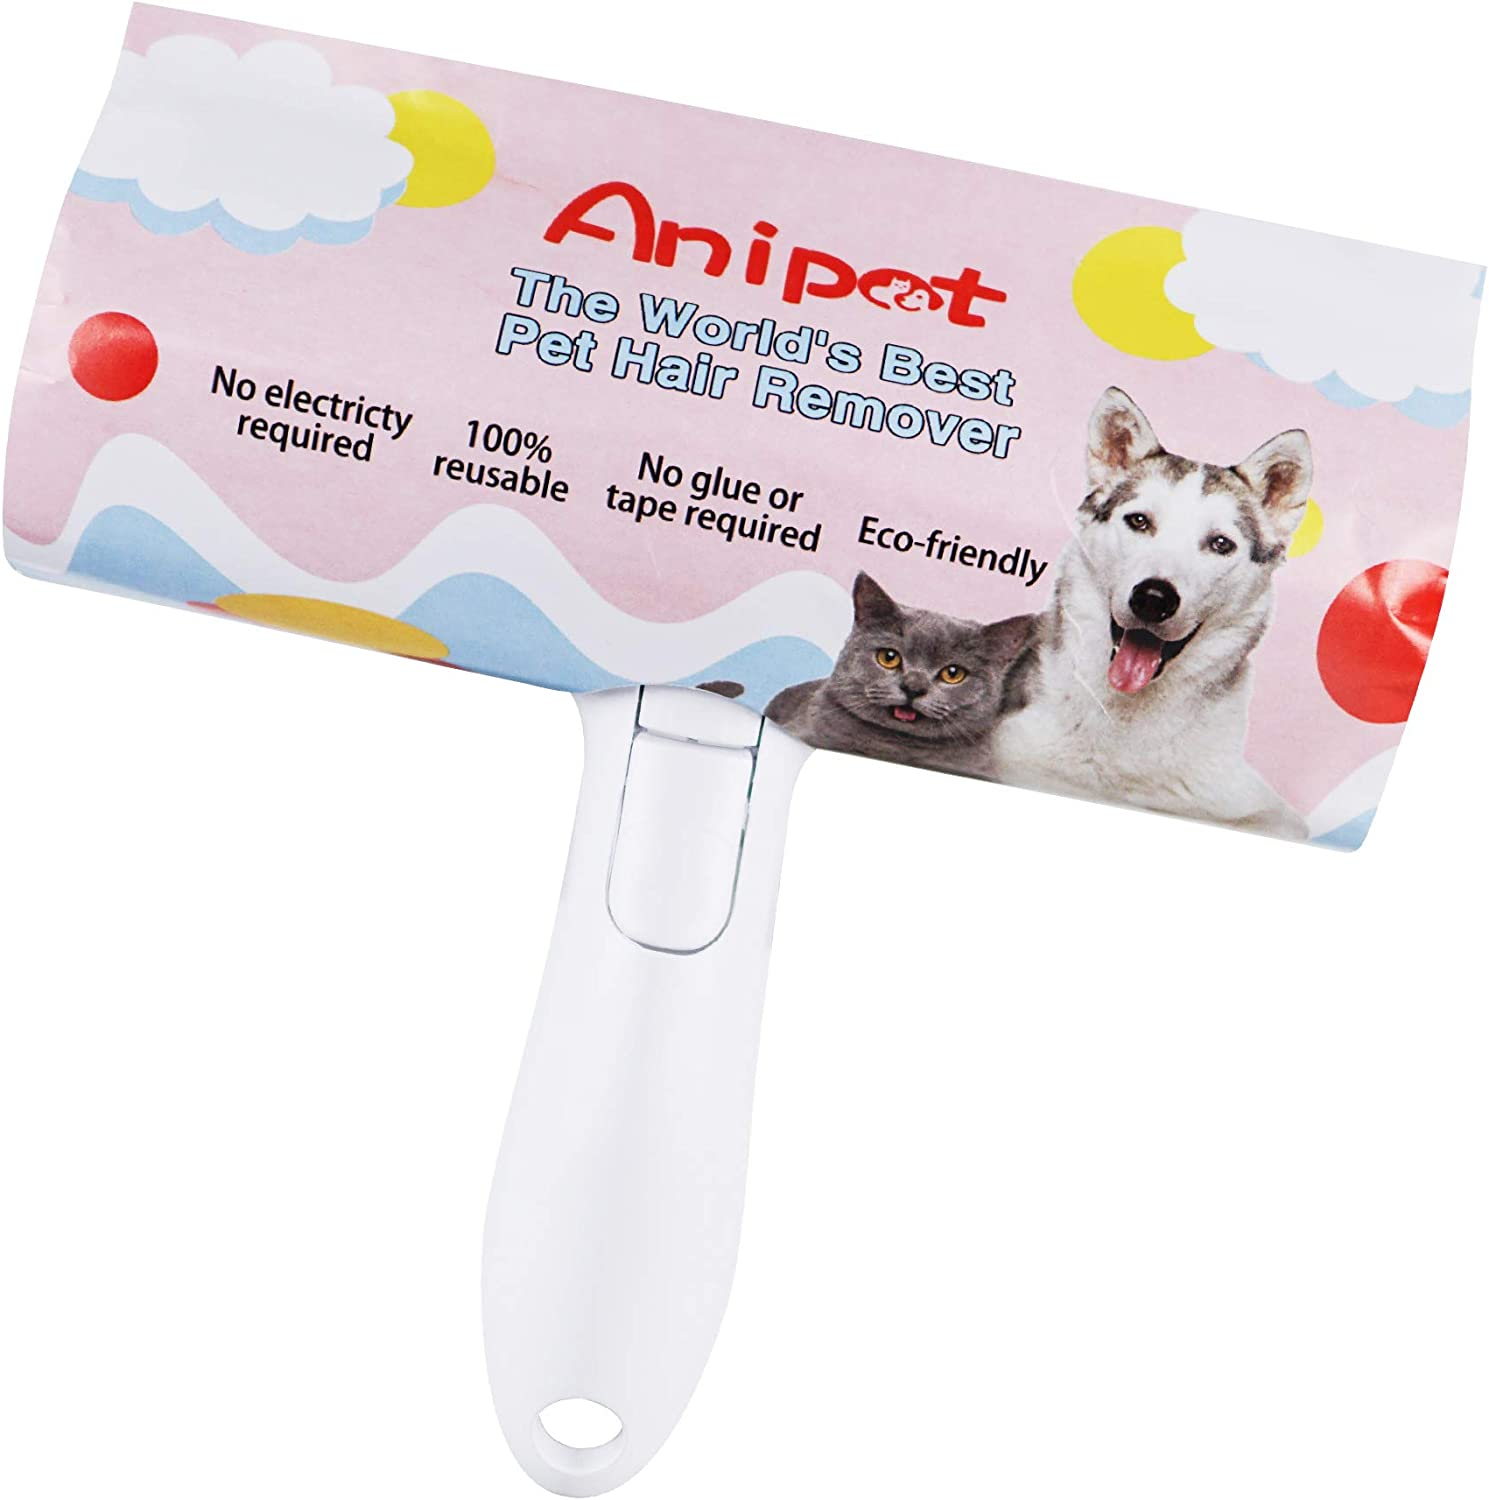 Pet Hair Remover Roller Carpet Couch Reusable Pet Hair Lint Roller Dog Cat Hair Remover Perfect Animal Fur Remover for Furniture Sofa Comforters